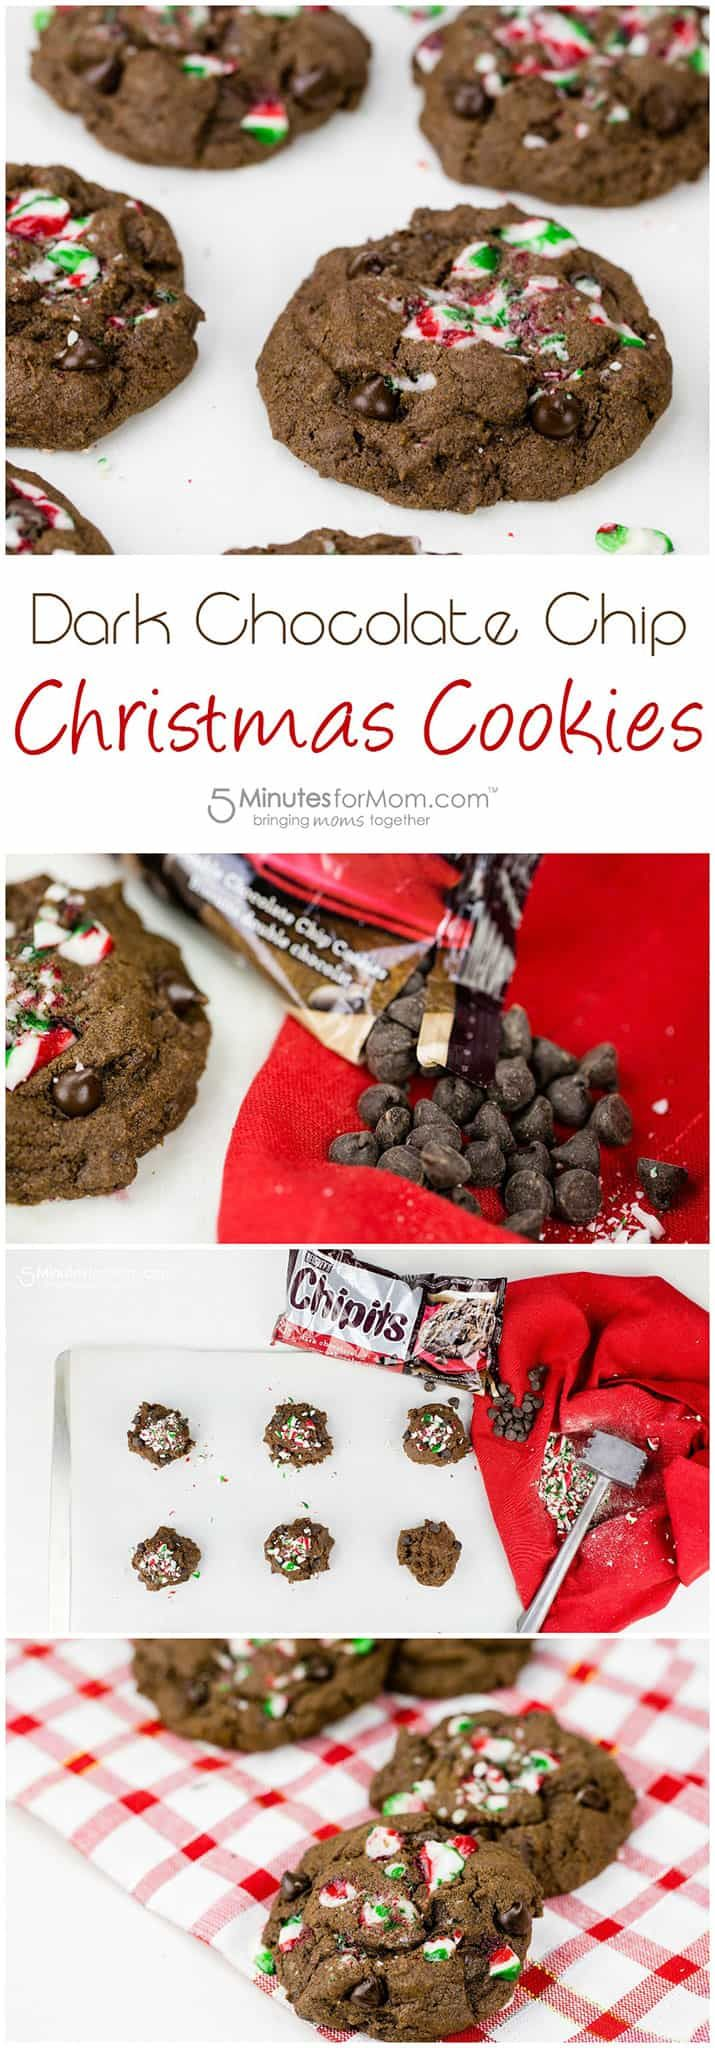 Dark Chocolate Chip Christmas Cookies - 5 Minutes for Mom